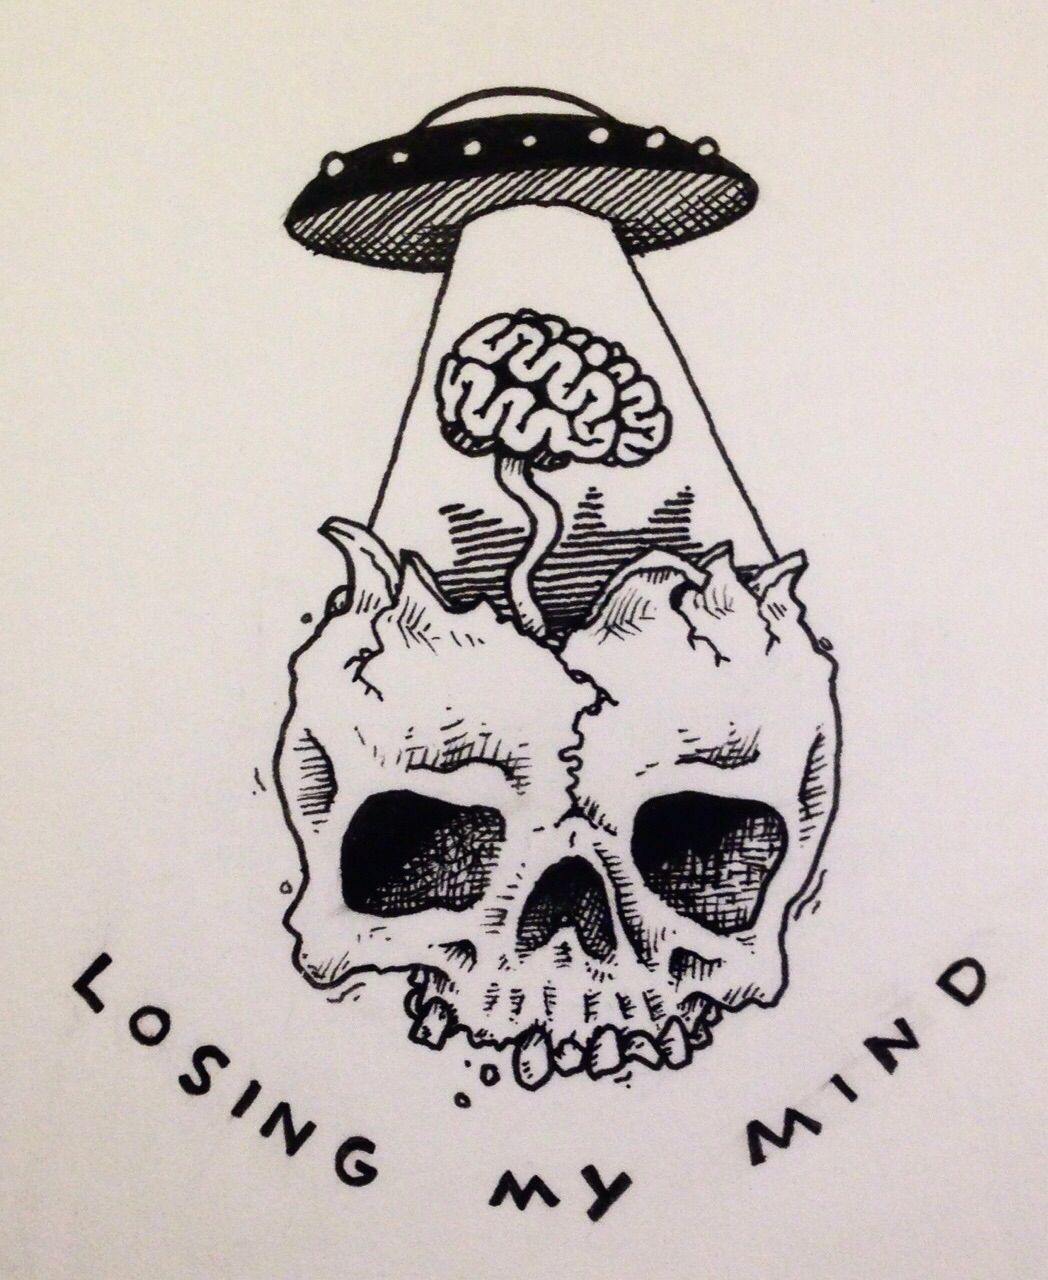 1048x1280 Losing My Mind. Ta2s Tattoo, Drawings And Doodles